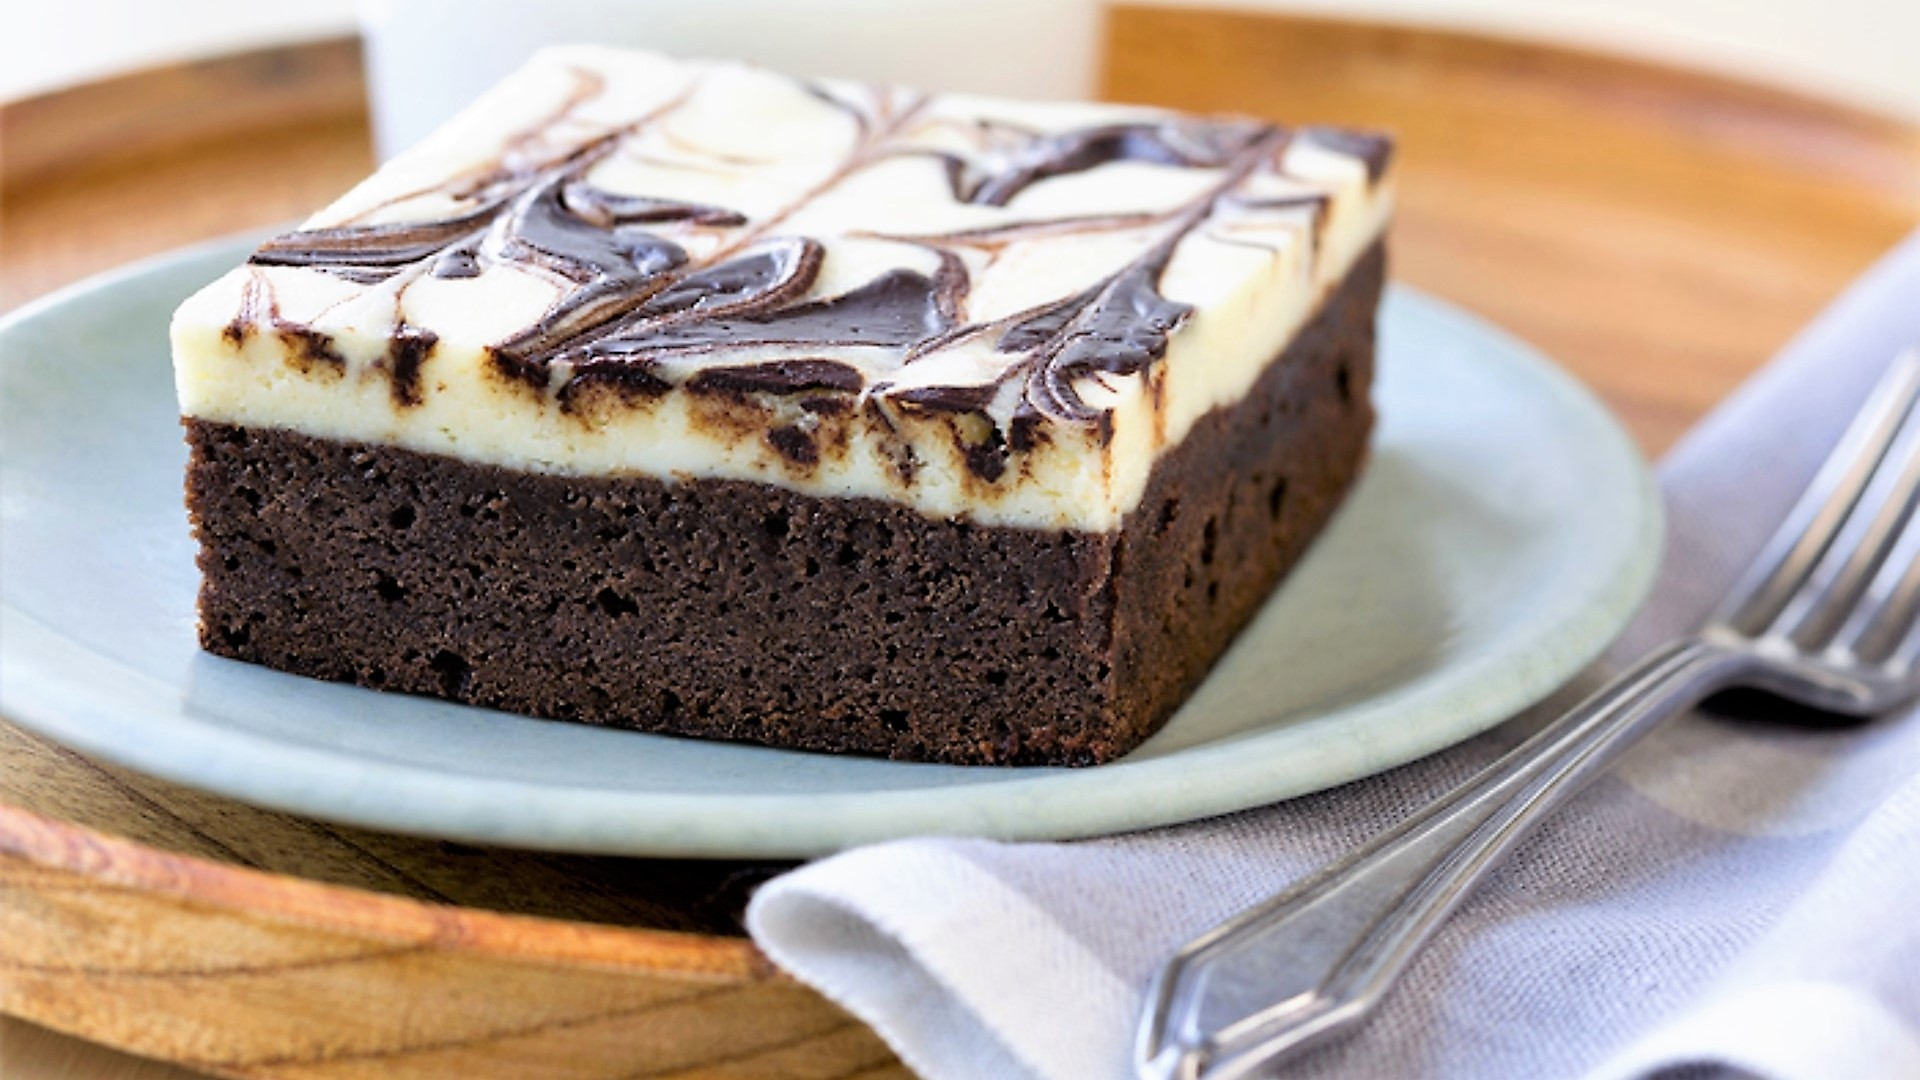 Lucy's Cakes & Crumbs - Brownie